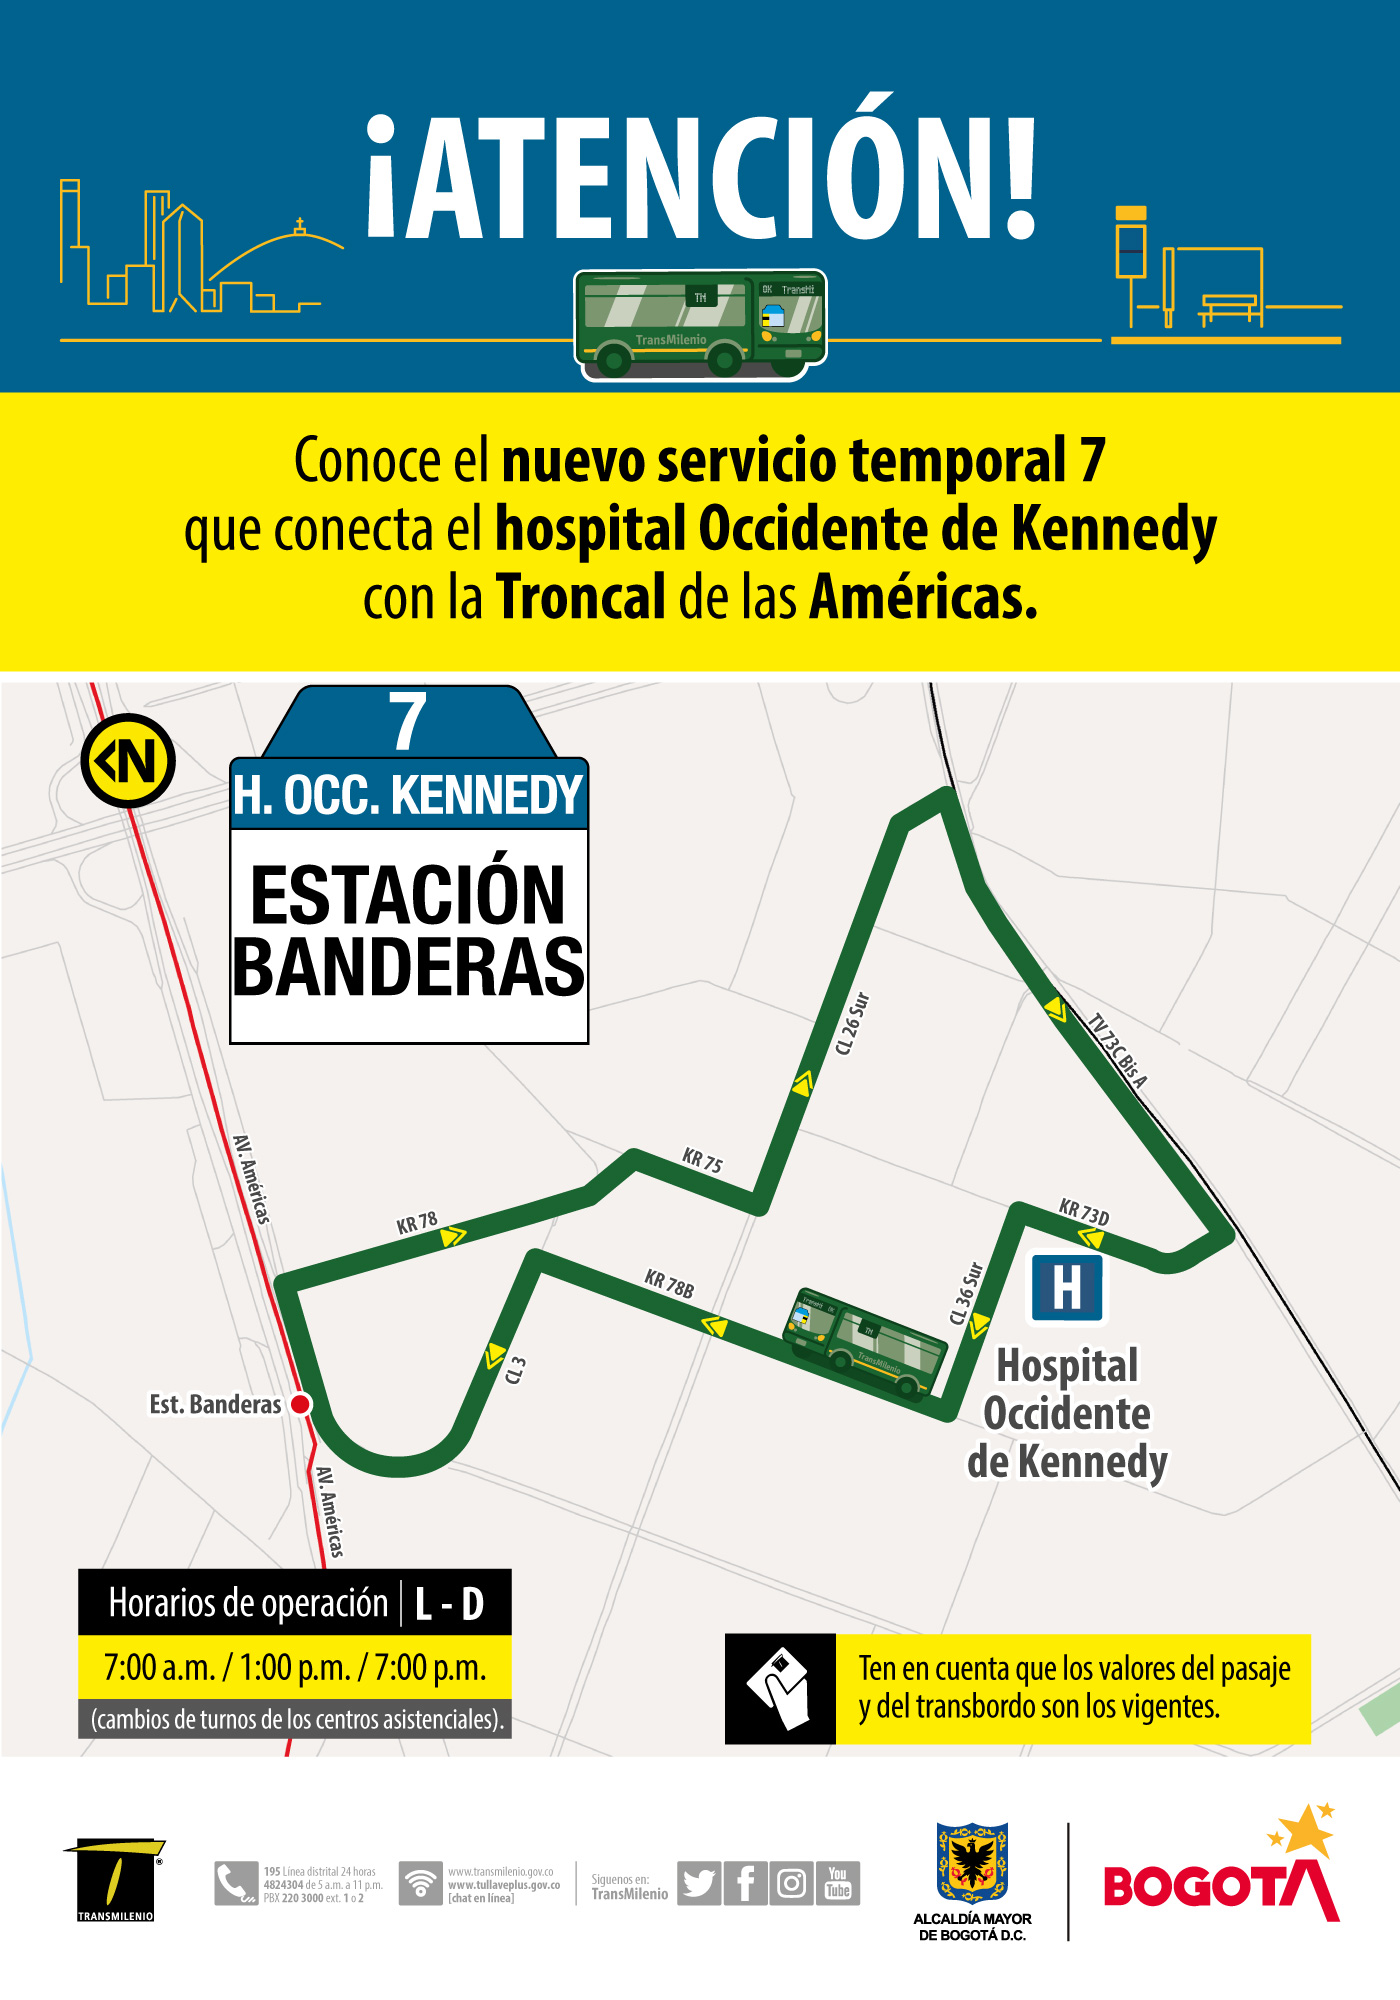 Hospital Occidente De Kennedy